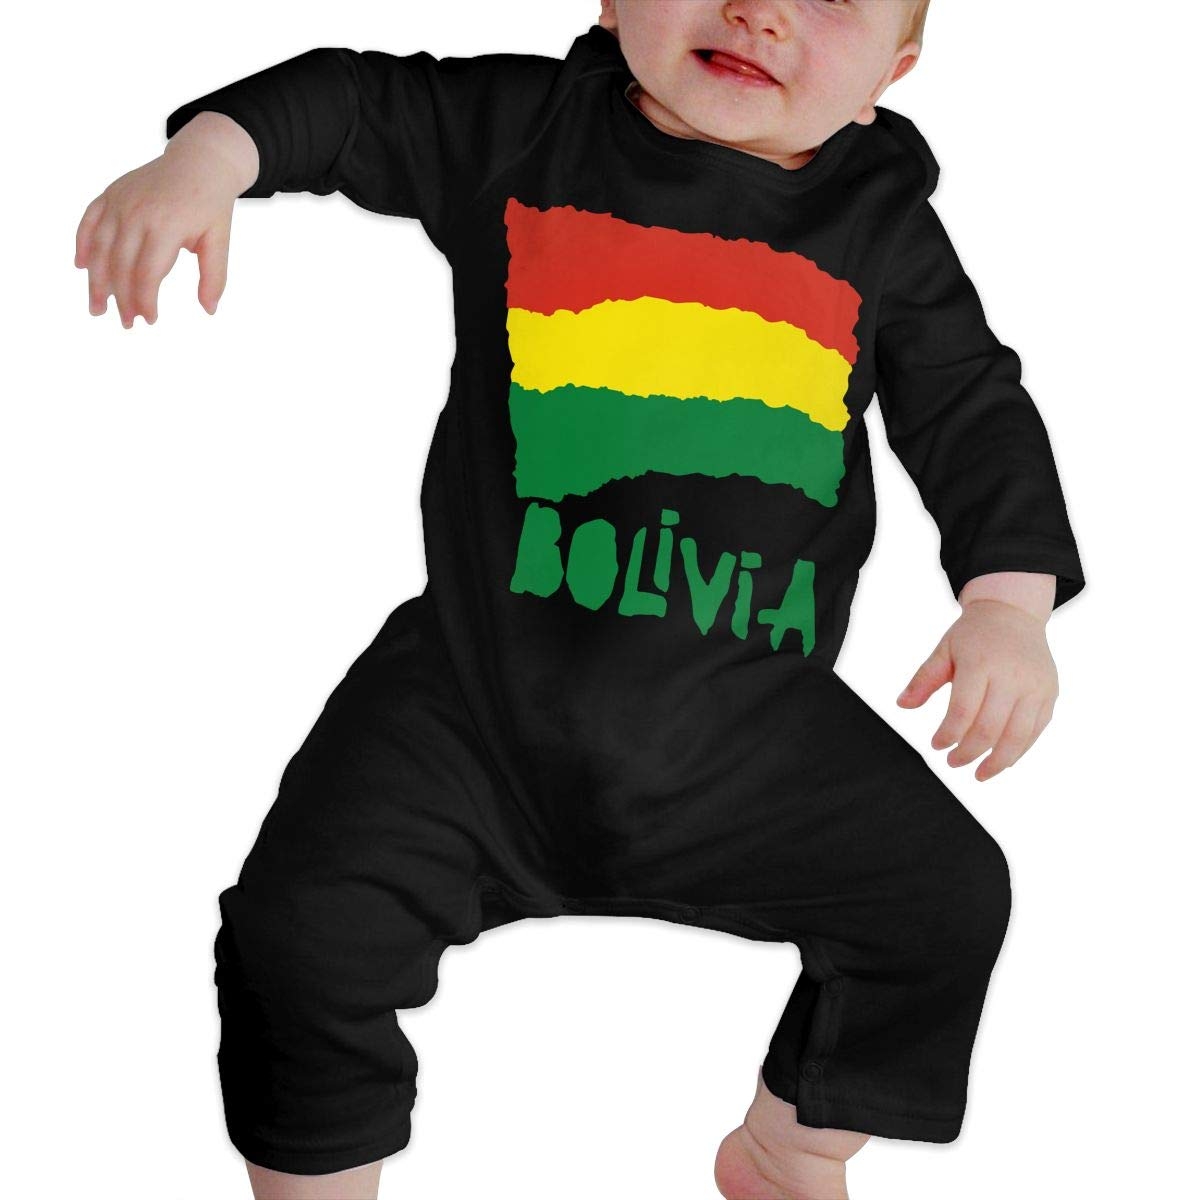 Mri-le1 Baby Boy Girl Long Sleeved Coveralls Bolivia Flag Baby Rompers